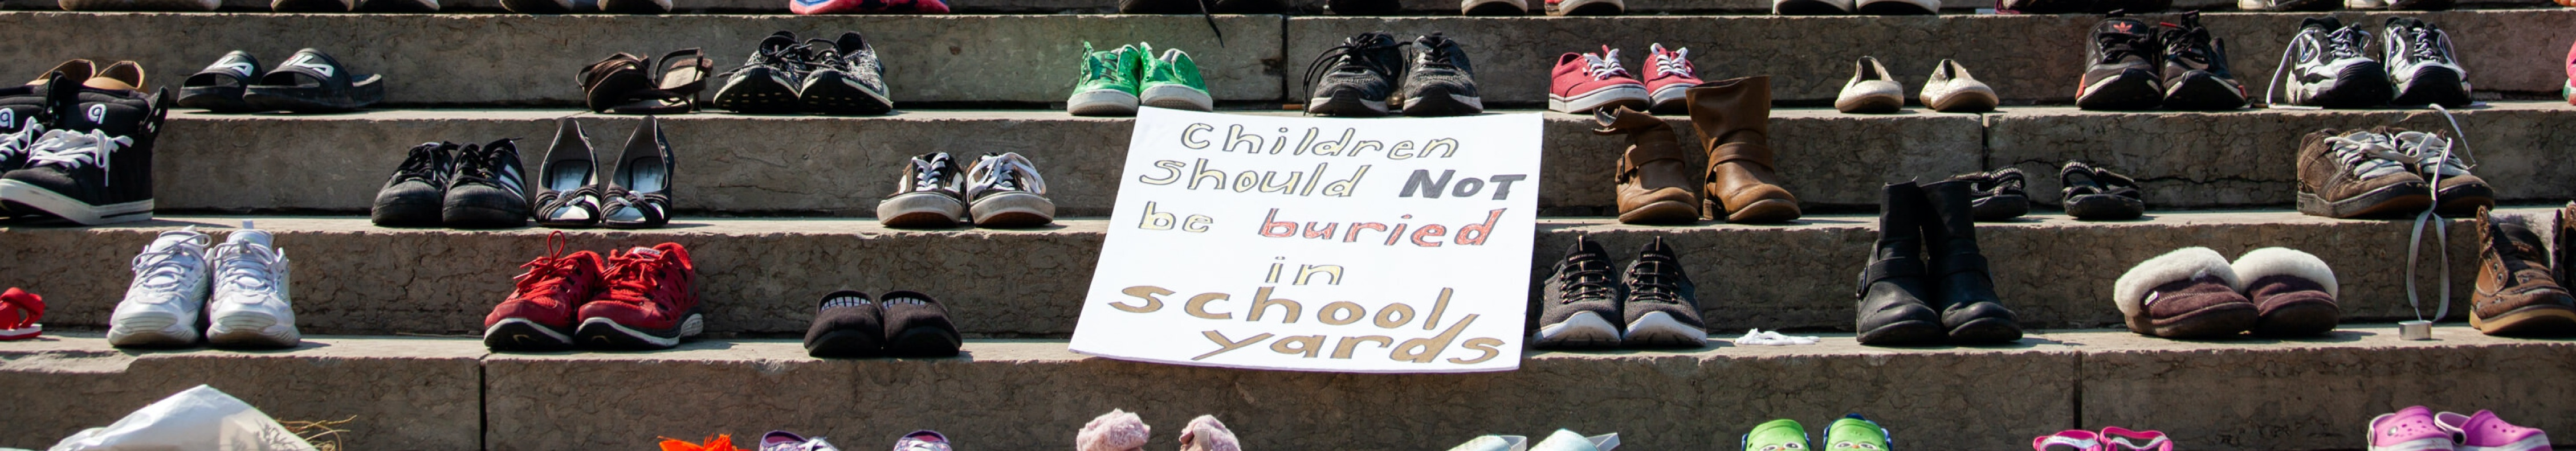 Shoes placed on the steps of the Manitoba Legislature to honour hundreds of children recently discovered in unmarked graves on the sites of several former residential schools across Canada near the now toppled statue of Queen Victoria on July 2, 2021 in Winnipeg, Manitoba, Canada. The statue was pulled down by indigenous protestors following a march to honour survivors and victims of Canadaâs residential school system. (Photo by Daniel Crump/Anadolu Agency via Getty Images)